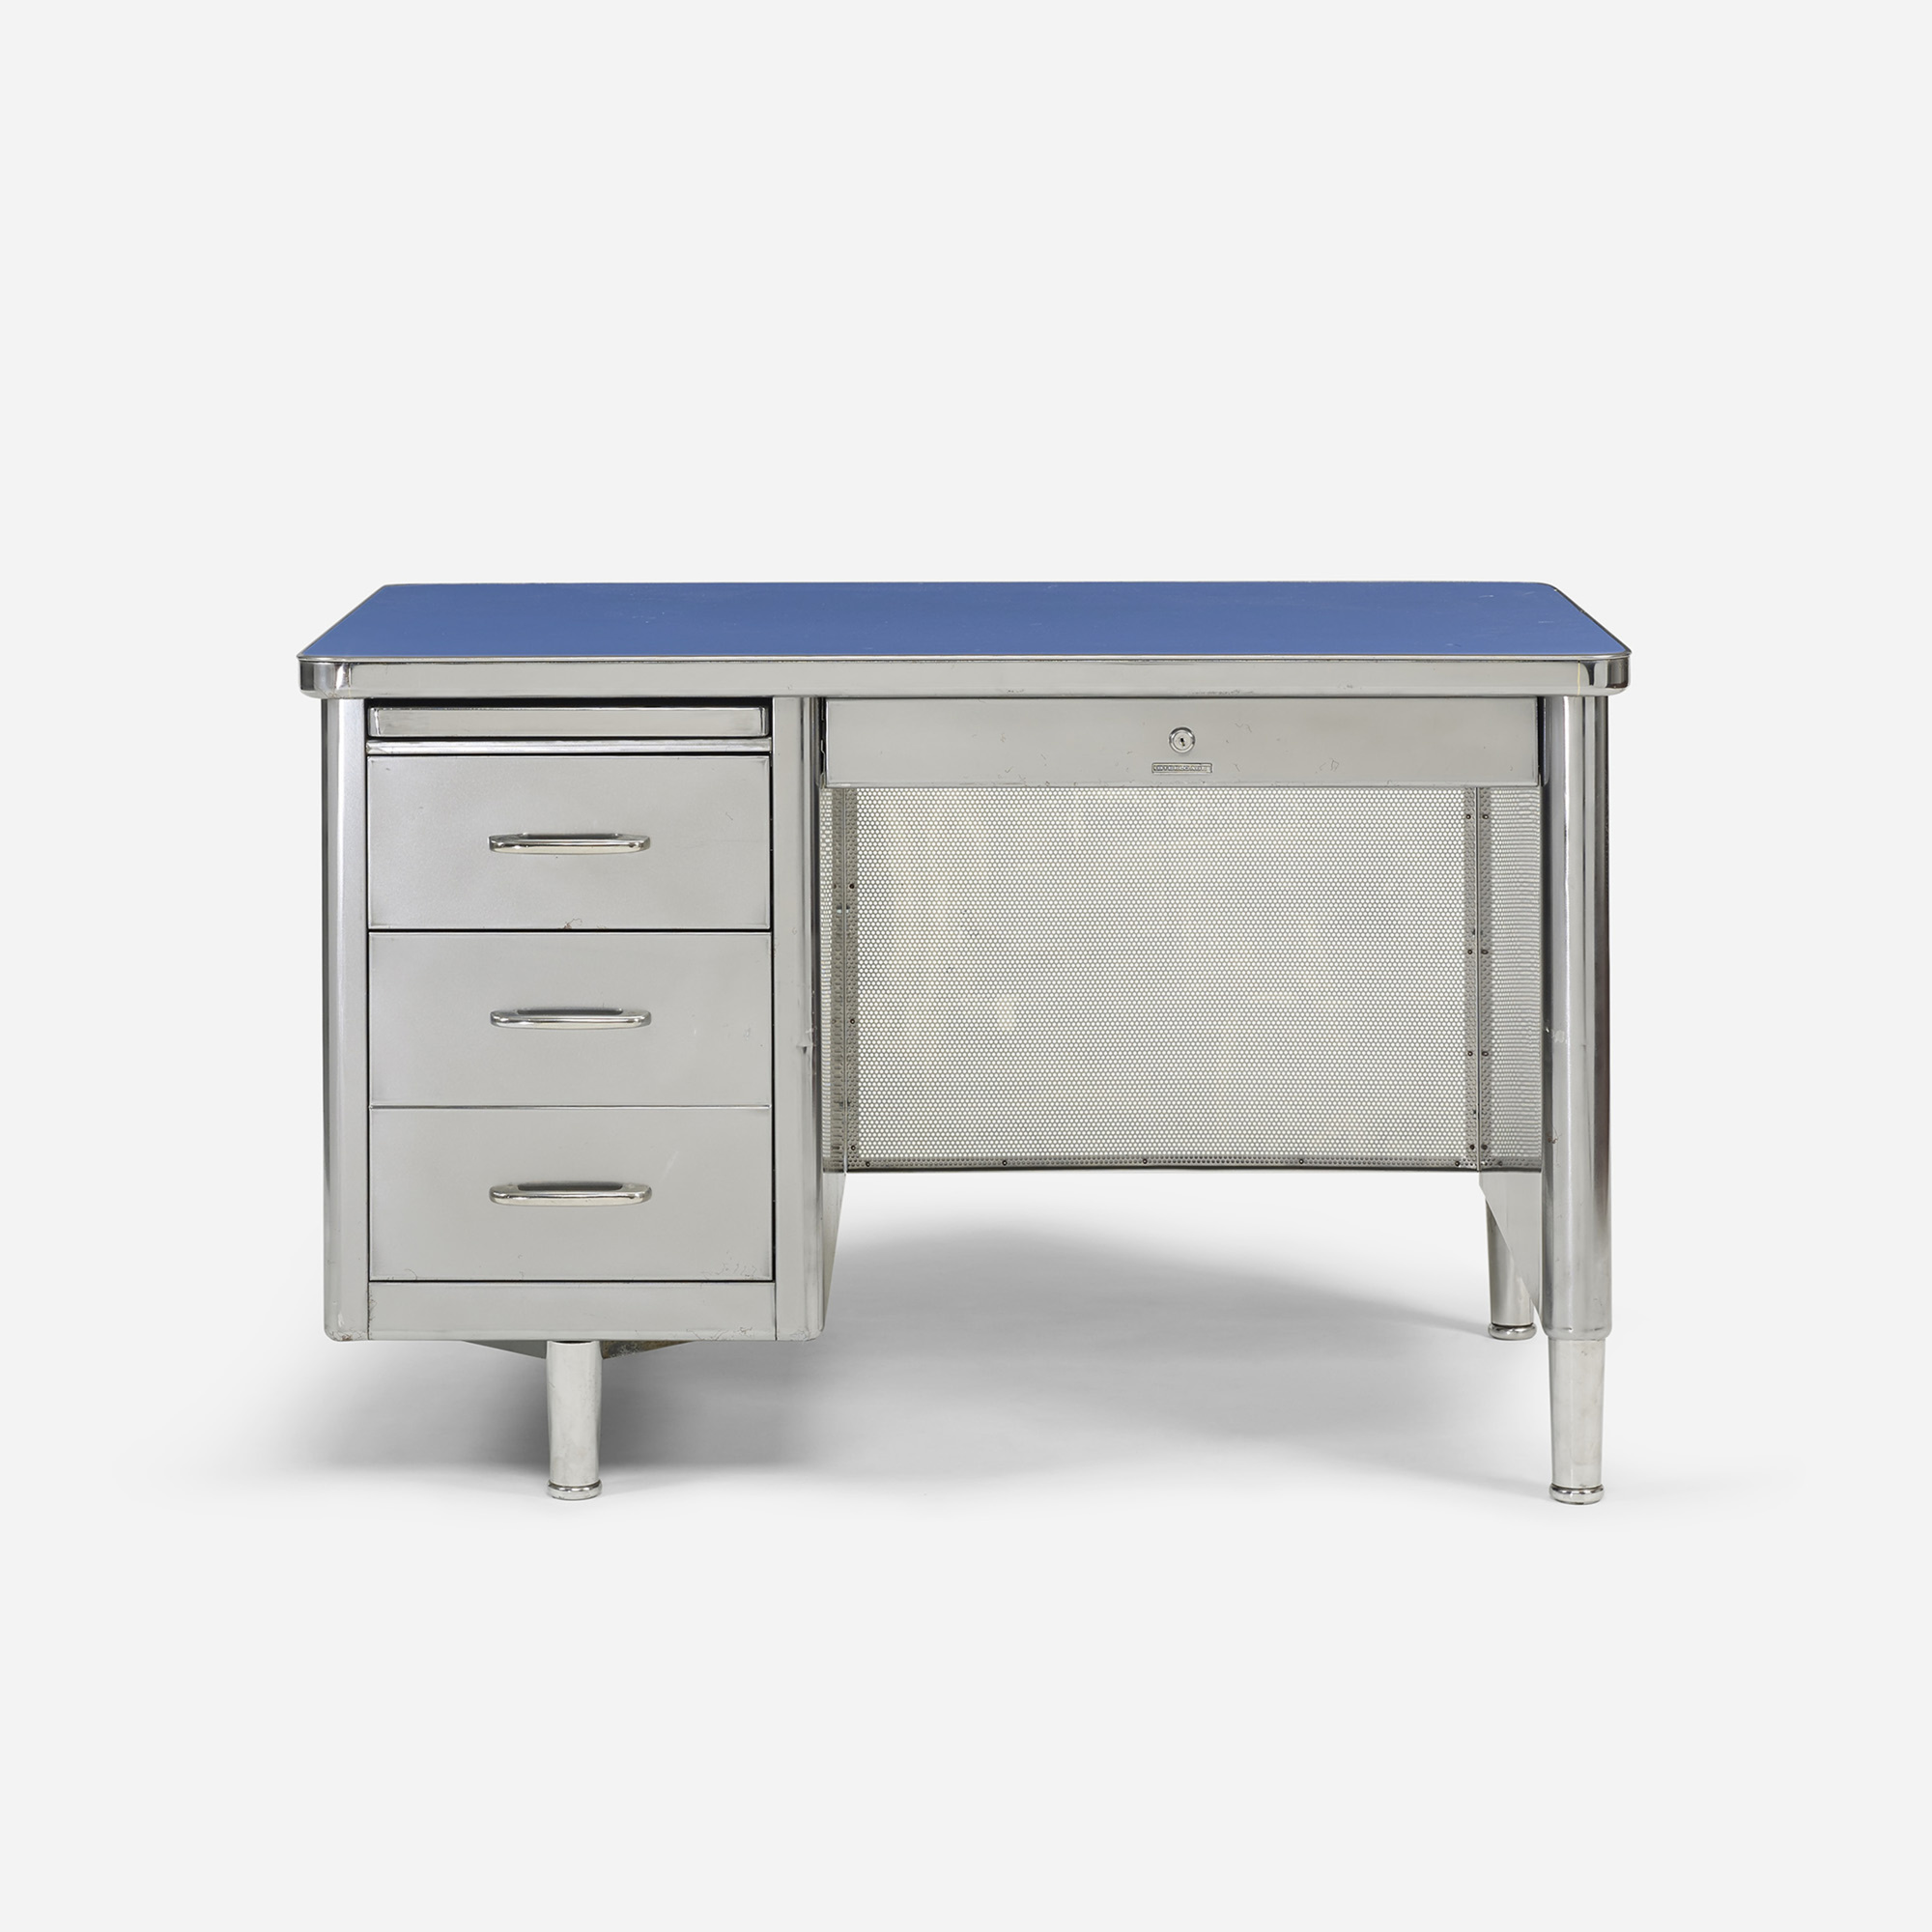 741: Steelcase / desk (1 of 4)